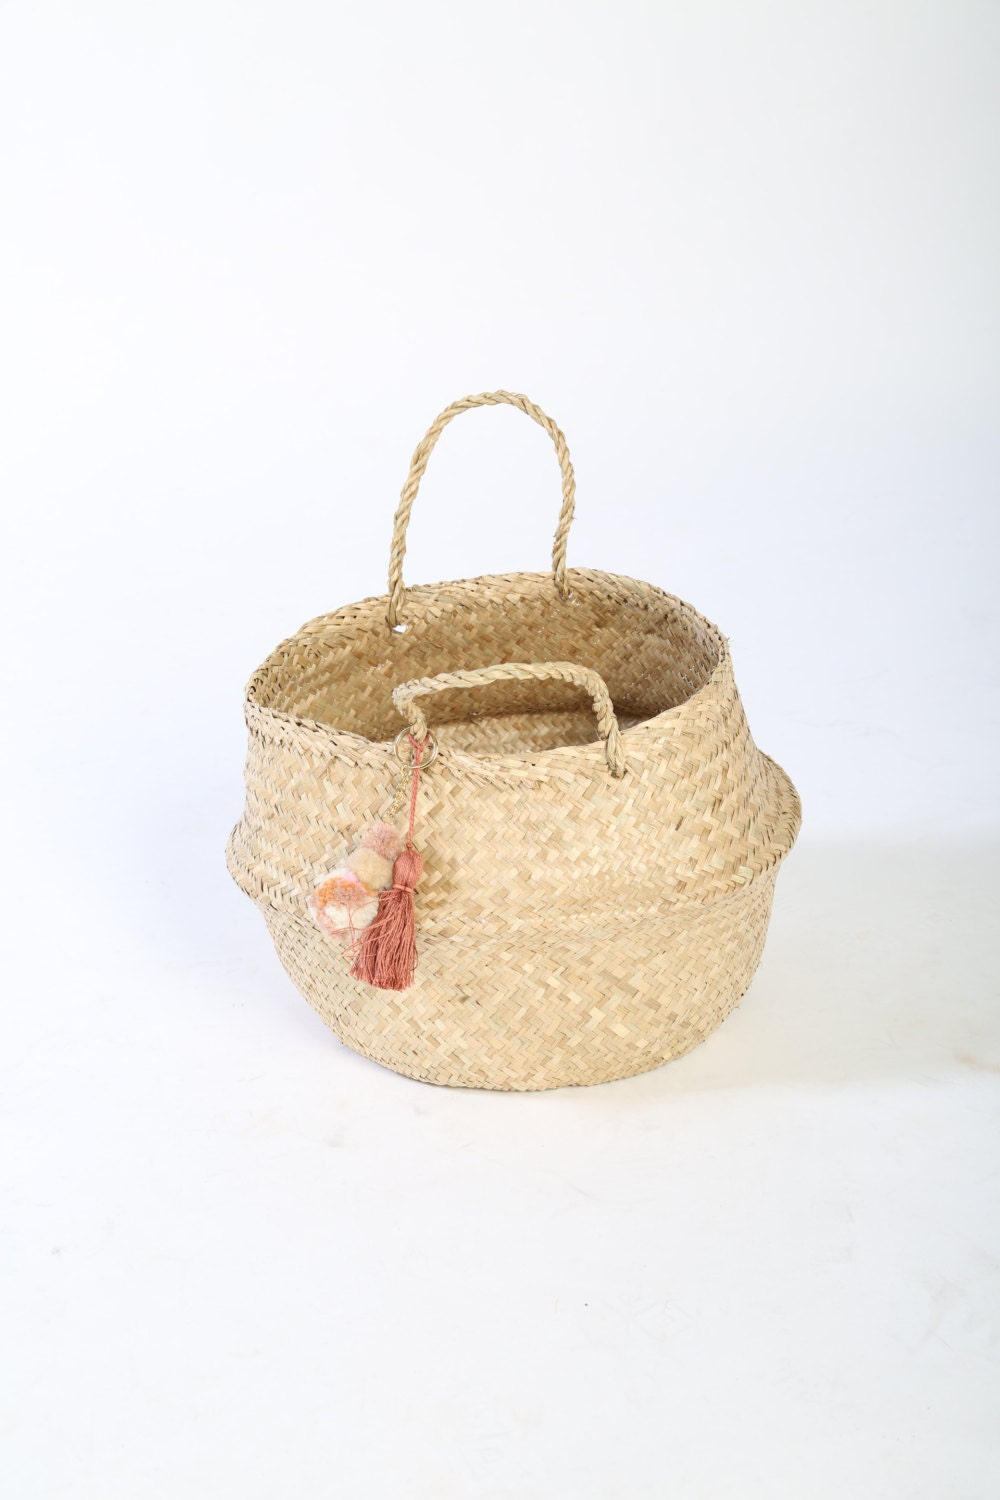 Wicker Basket With Pom Poms : Handwoven seagrass basket with tassel and pom keychain